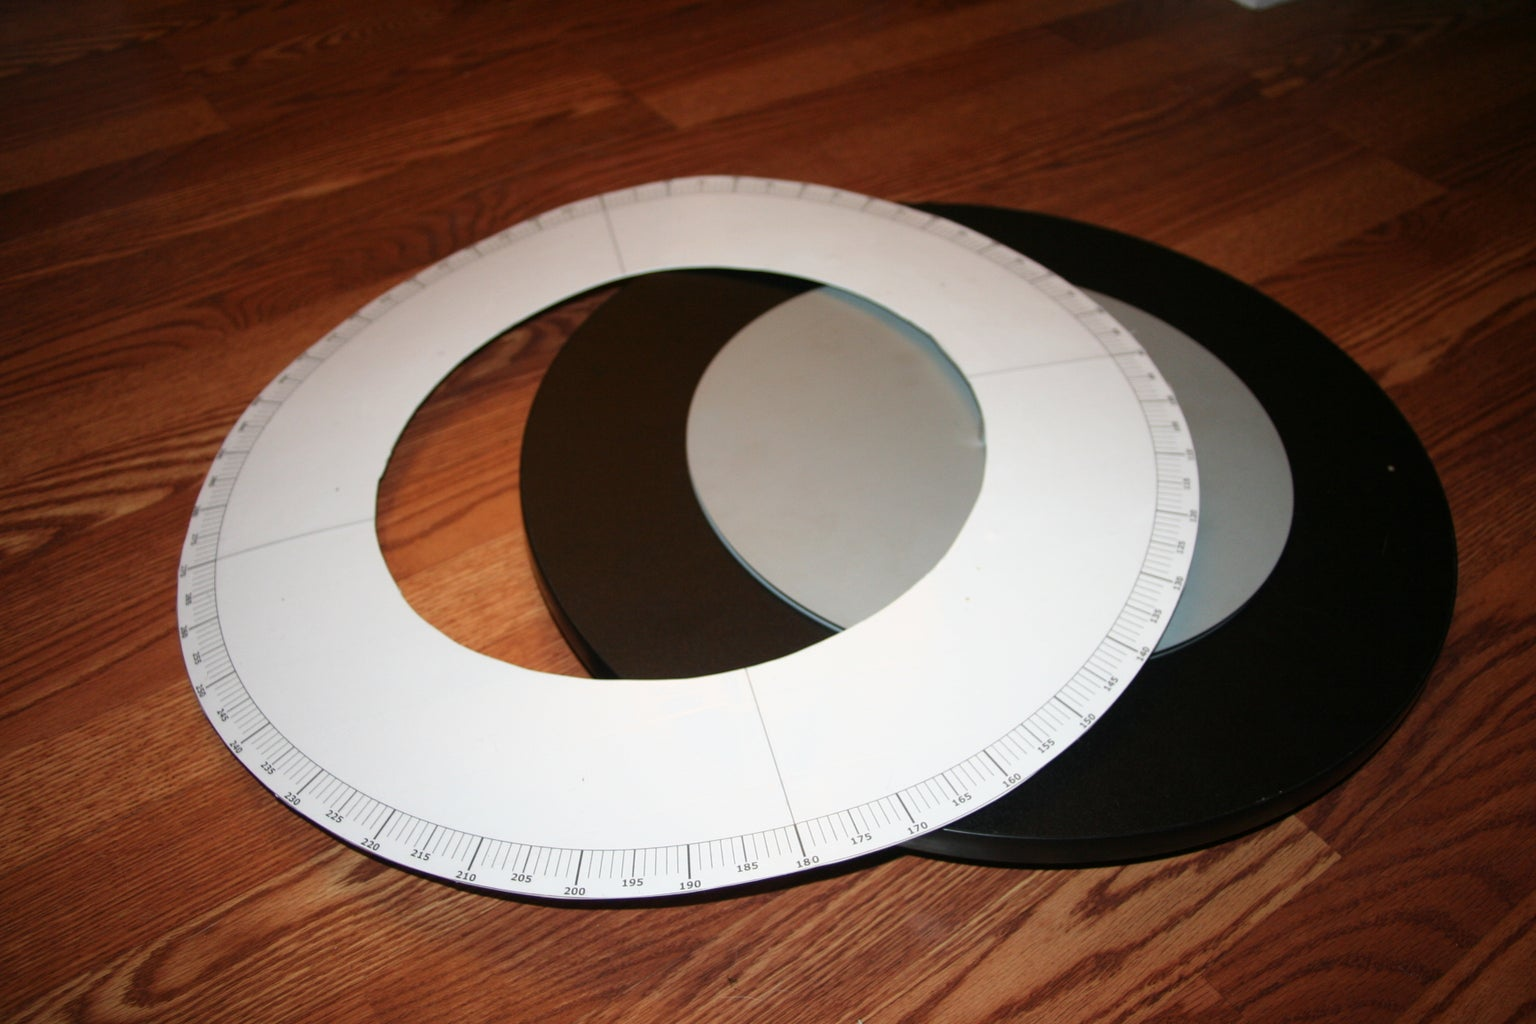 Physical Prototype - Part 1: the Degree Circle